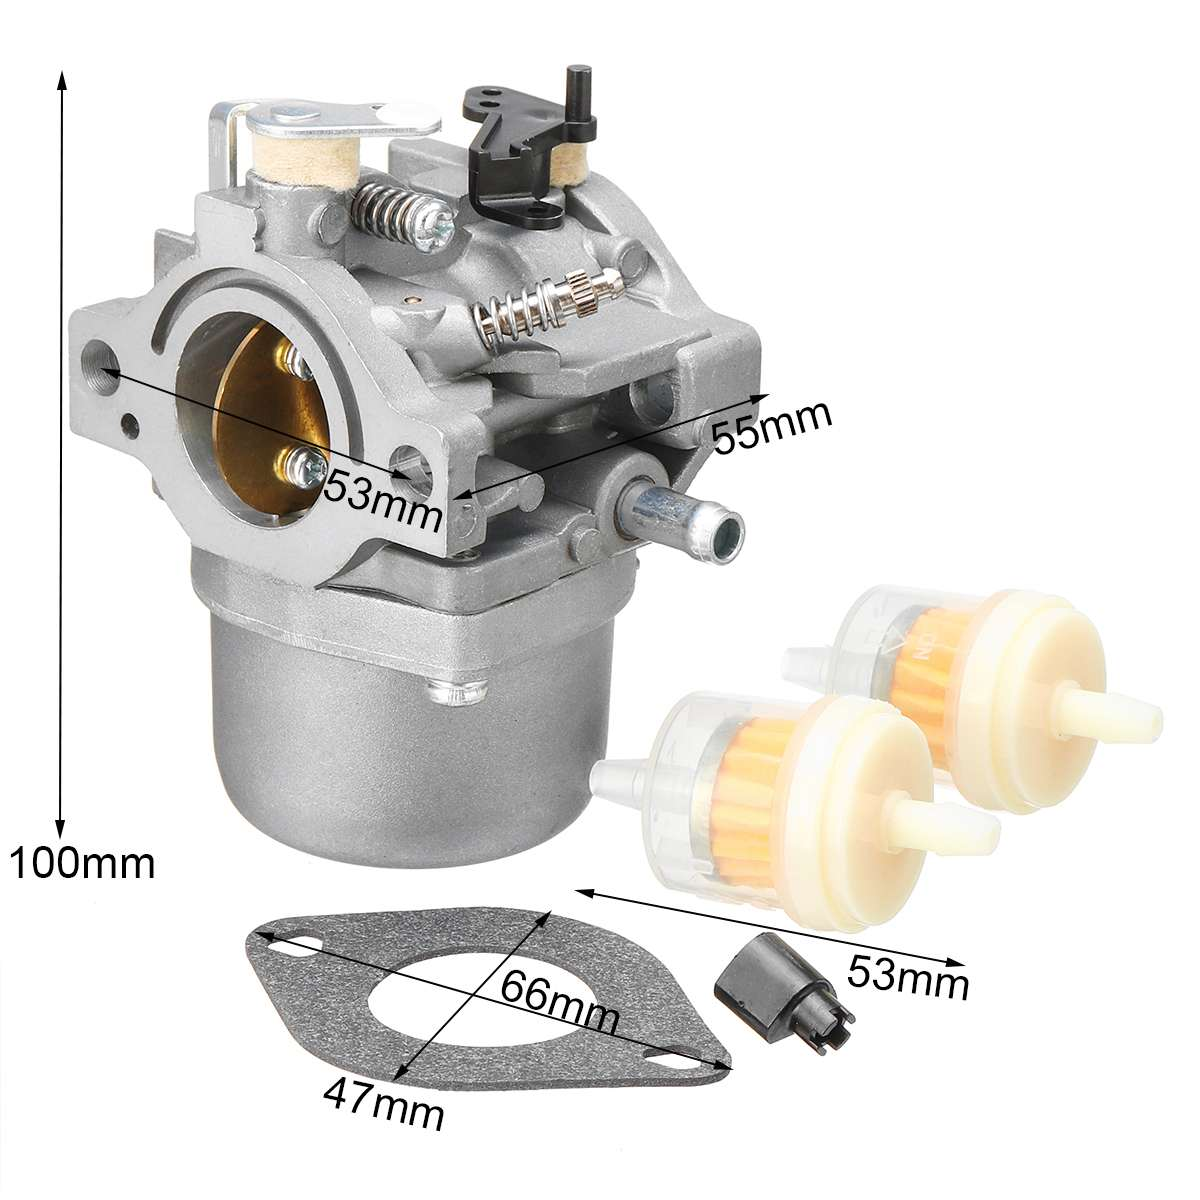 New Auto Carburetor For Briggs & Stratton Walbro LMT 5-4993 With Mounting Gasket Filter Fuel Supply System Parts Carburetor